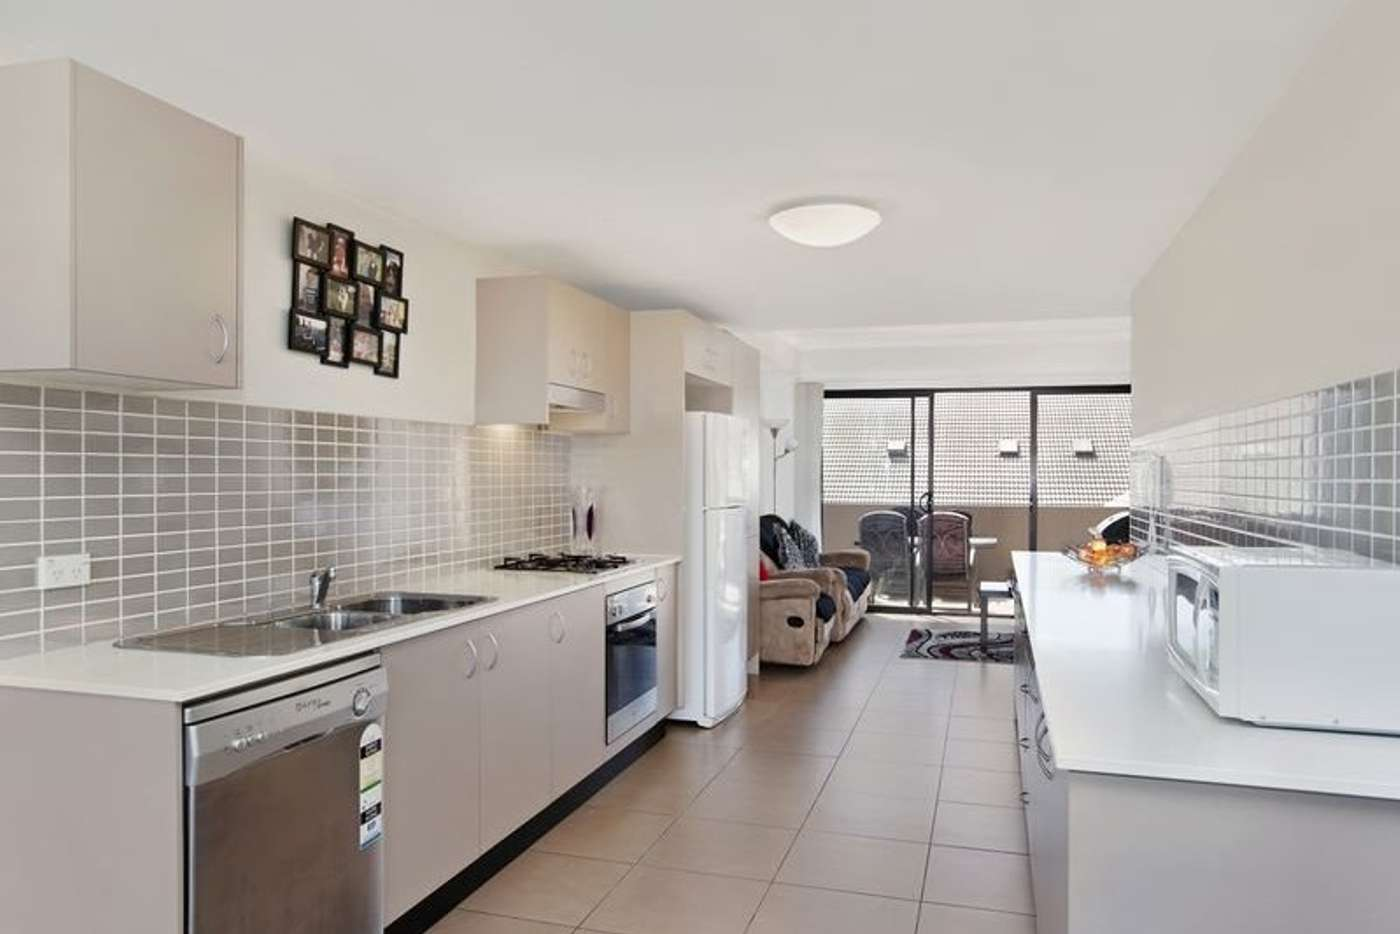 Main view of Homely apartment listing, 46/9-21 Hillcrest Street, Homebush West NSW 2140